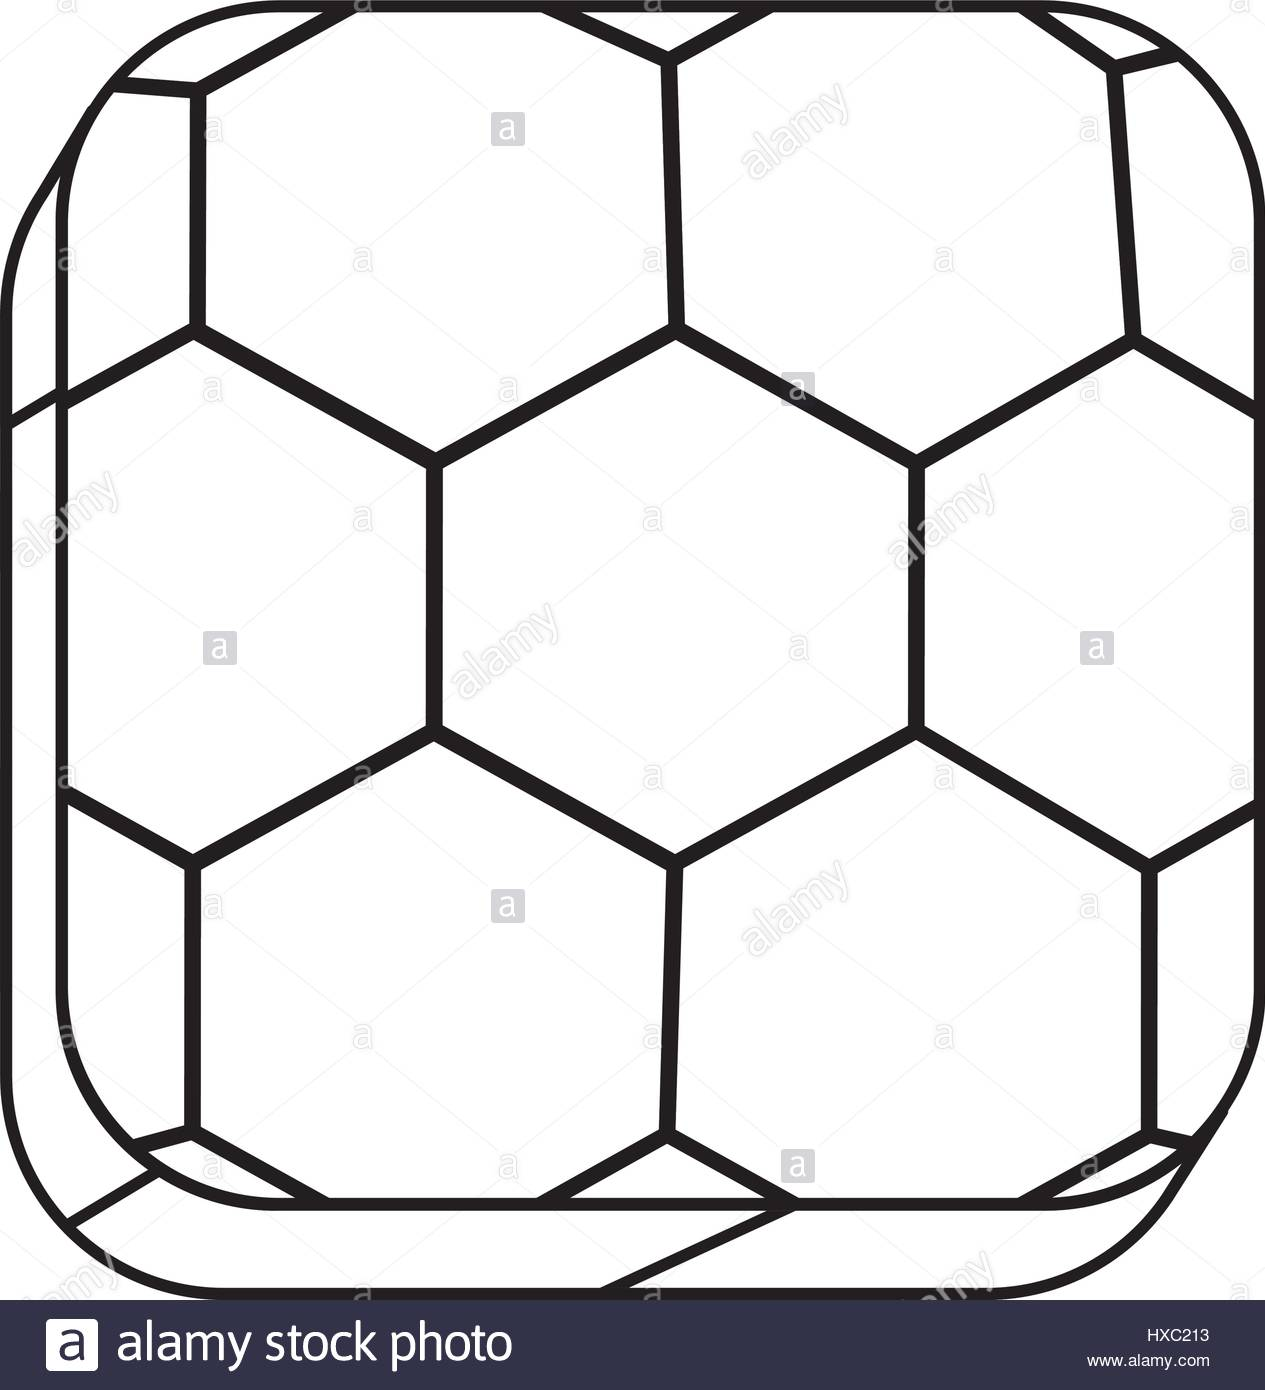 1265x1390 Square Silhouette Button With Contour Soccer Shape Ball Stock